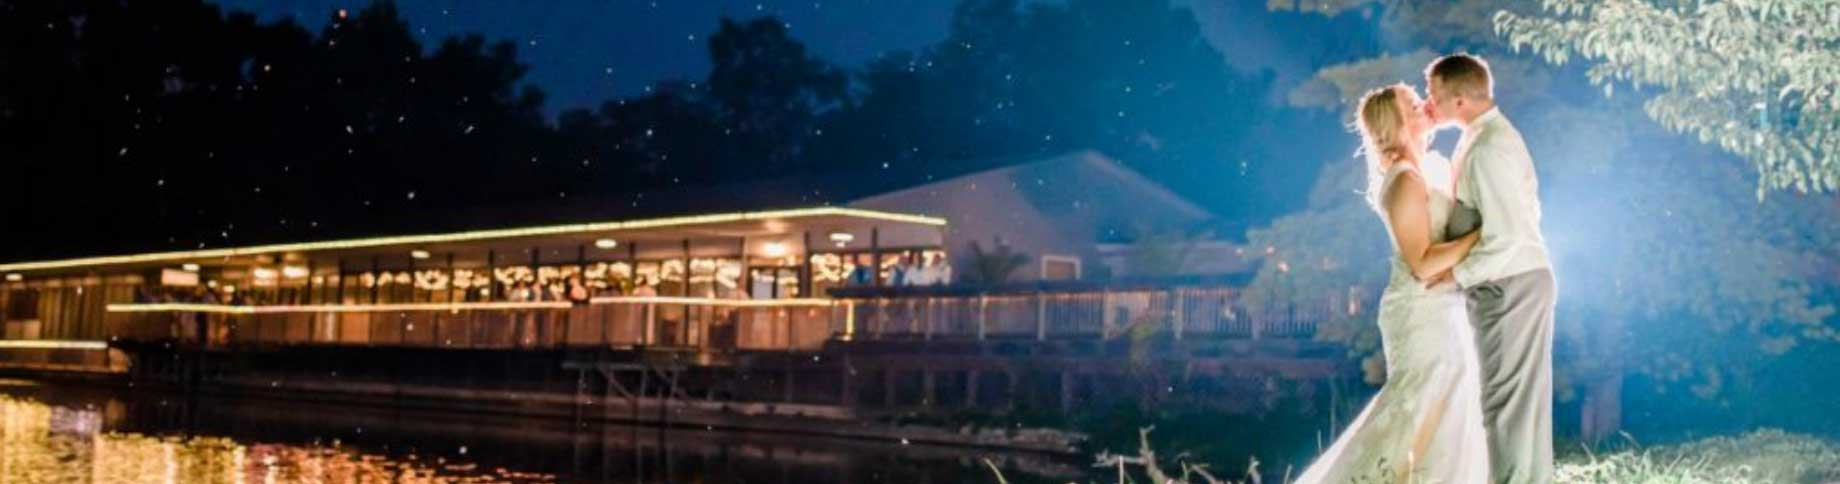 Picturesque evening wedding reception on the lake at The Lodge at The Willows